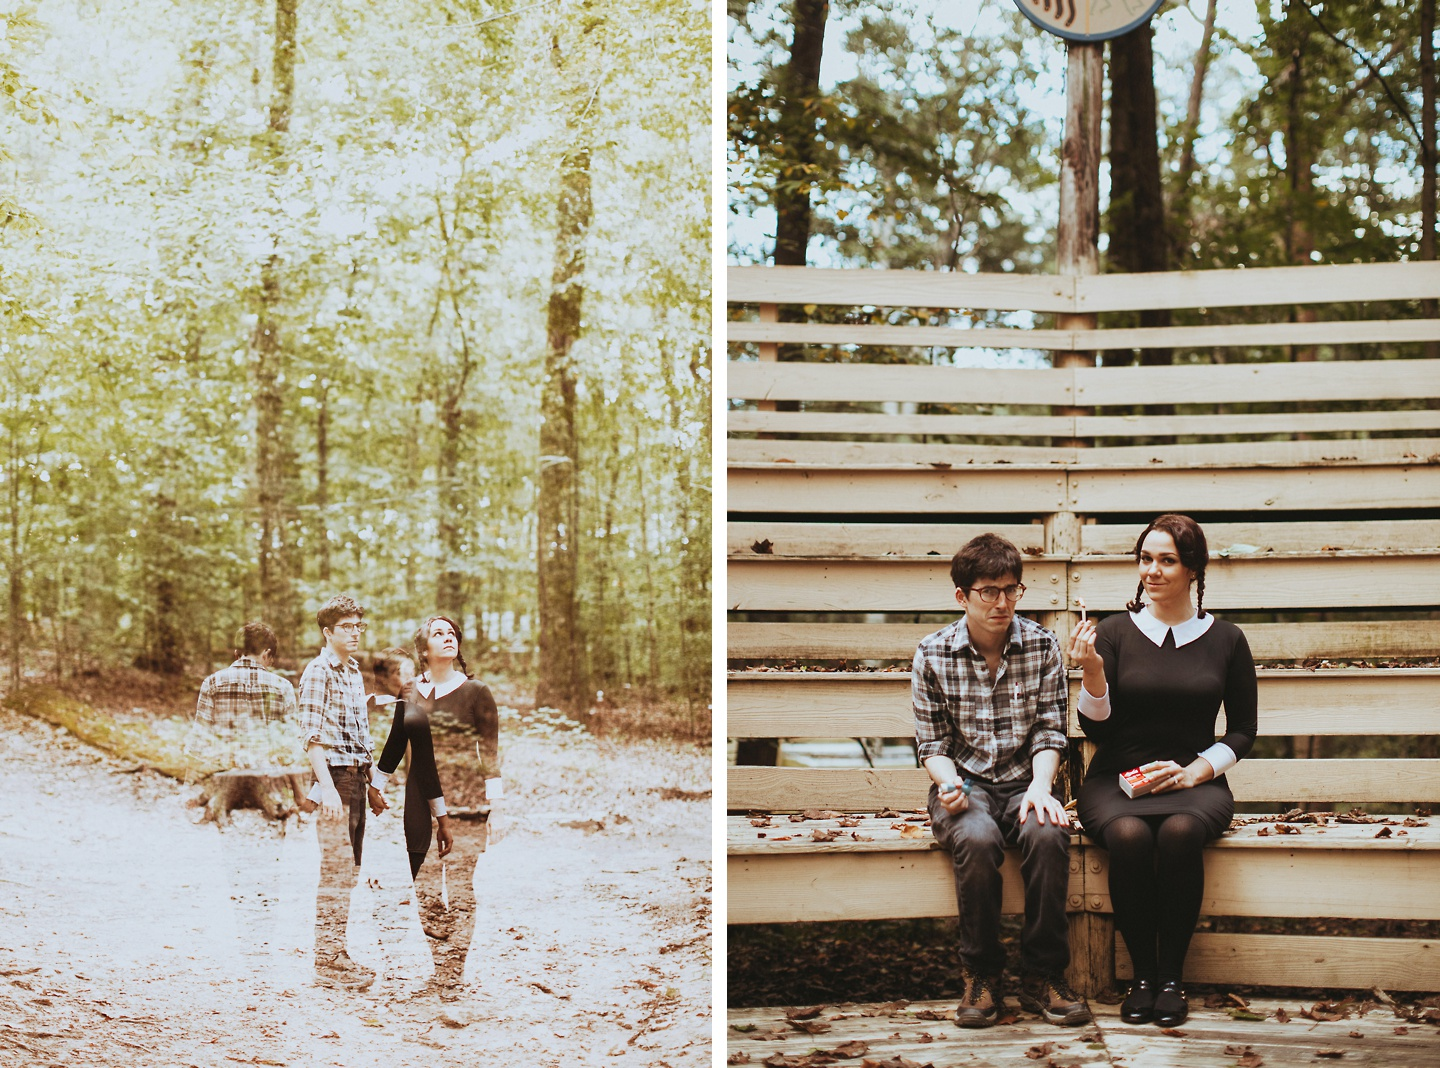 addams family values engagement pictures